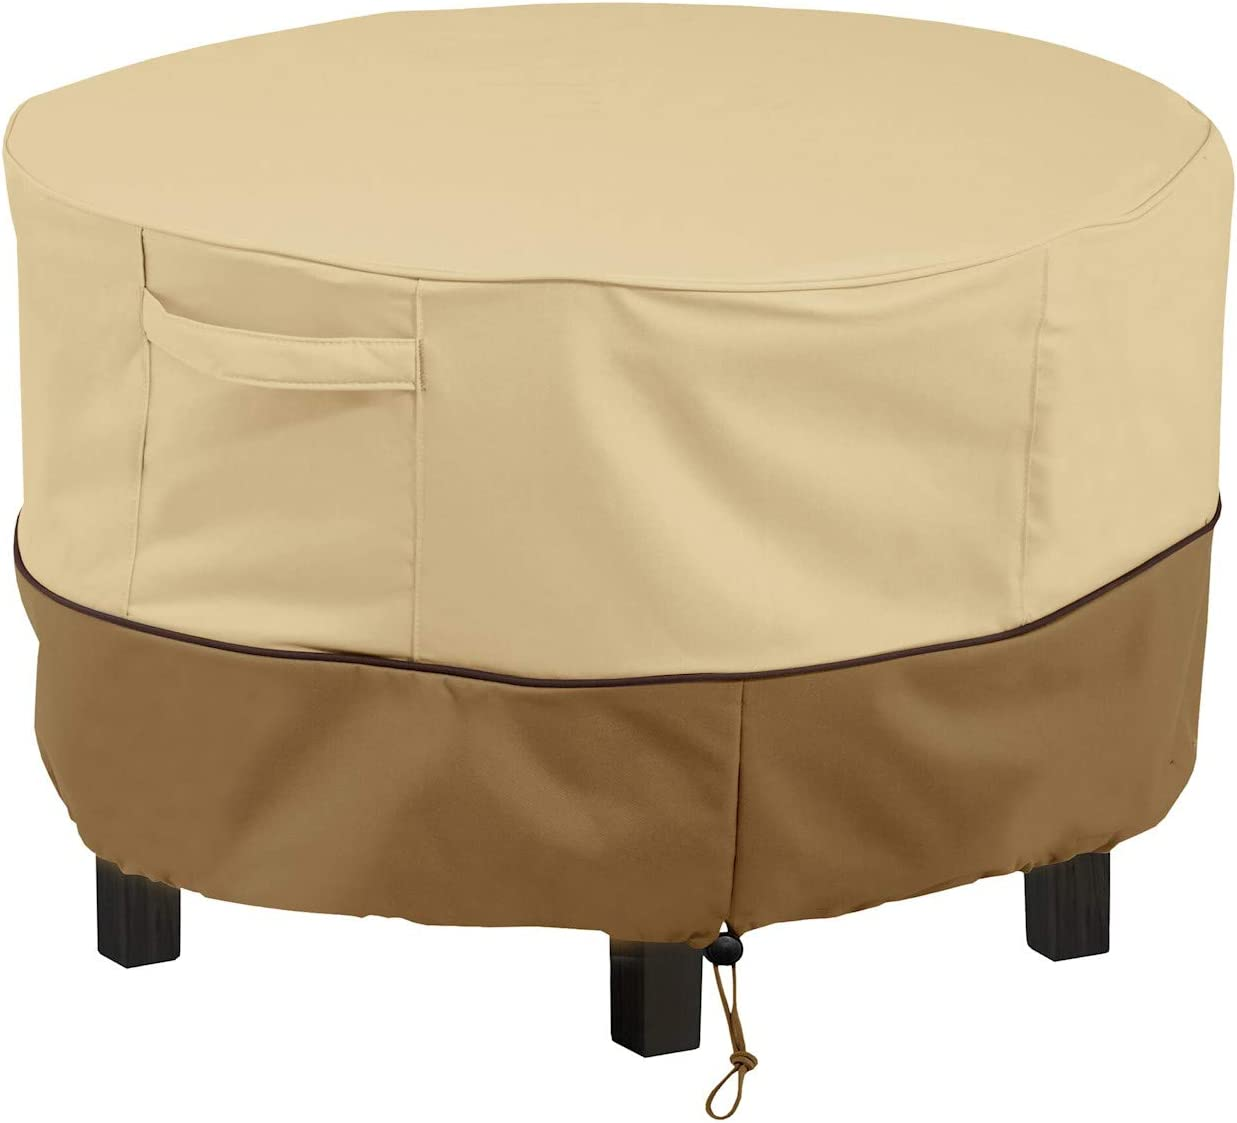 """HOME DISTRICT Patio Table Cover - Round Outdoor Dining Table Furniture Protector with Adjustable Toggles, Click Close Straps, 48"""" x 26"""""""